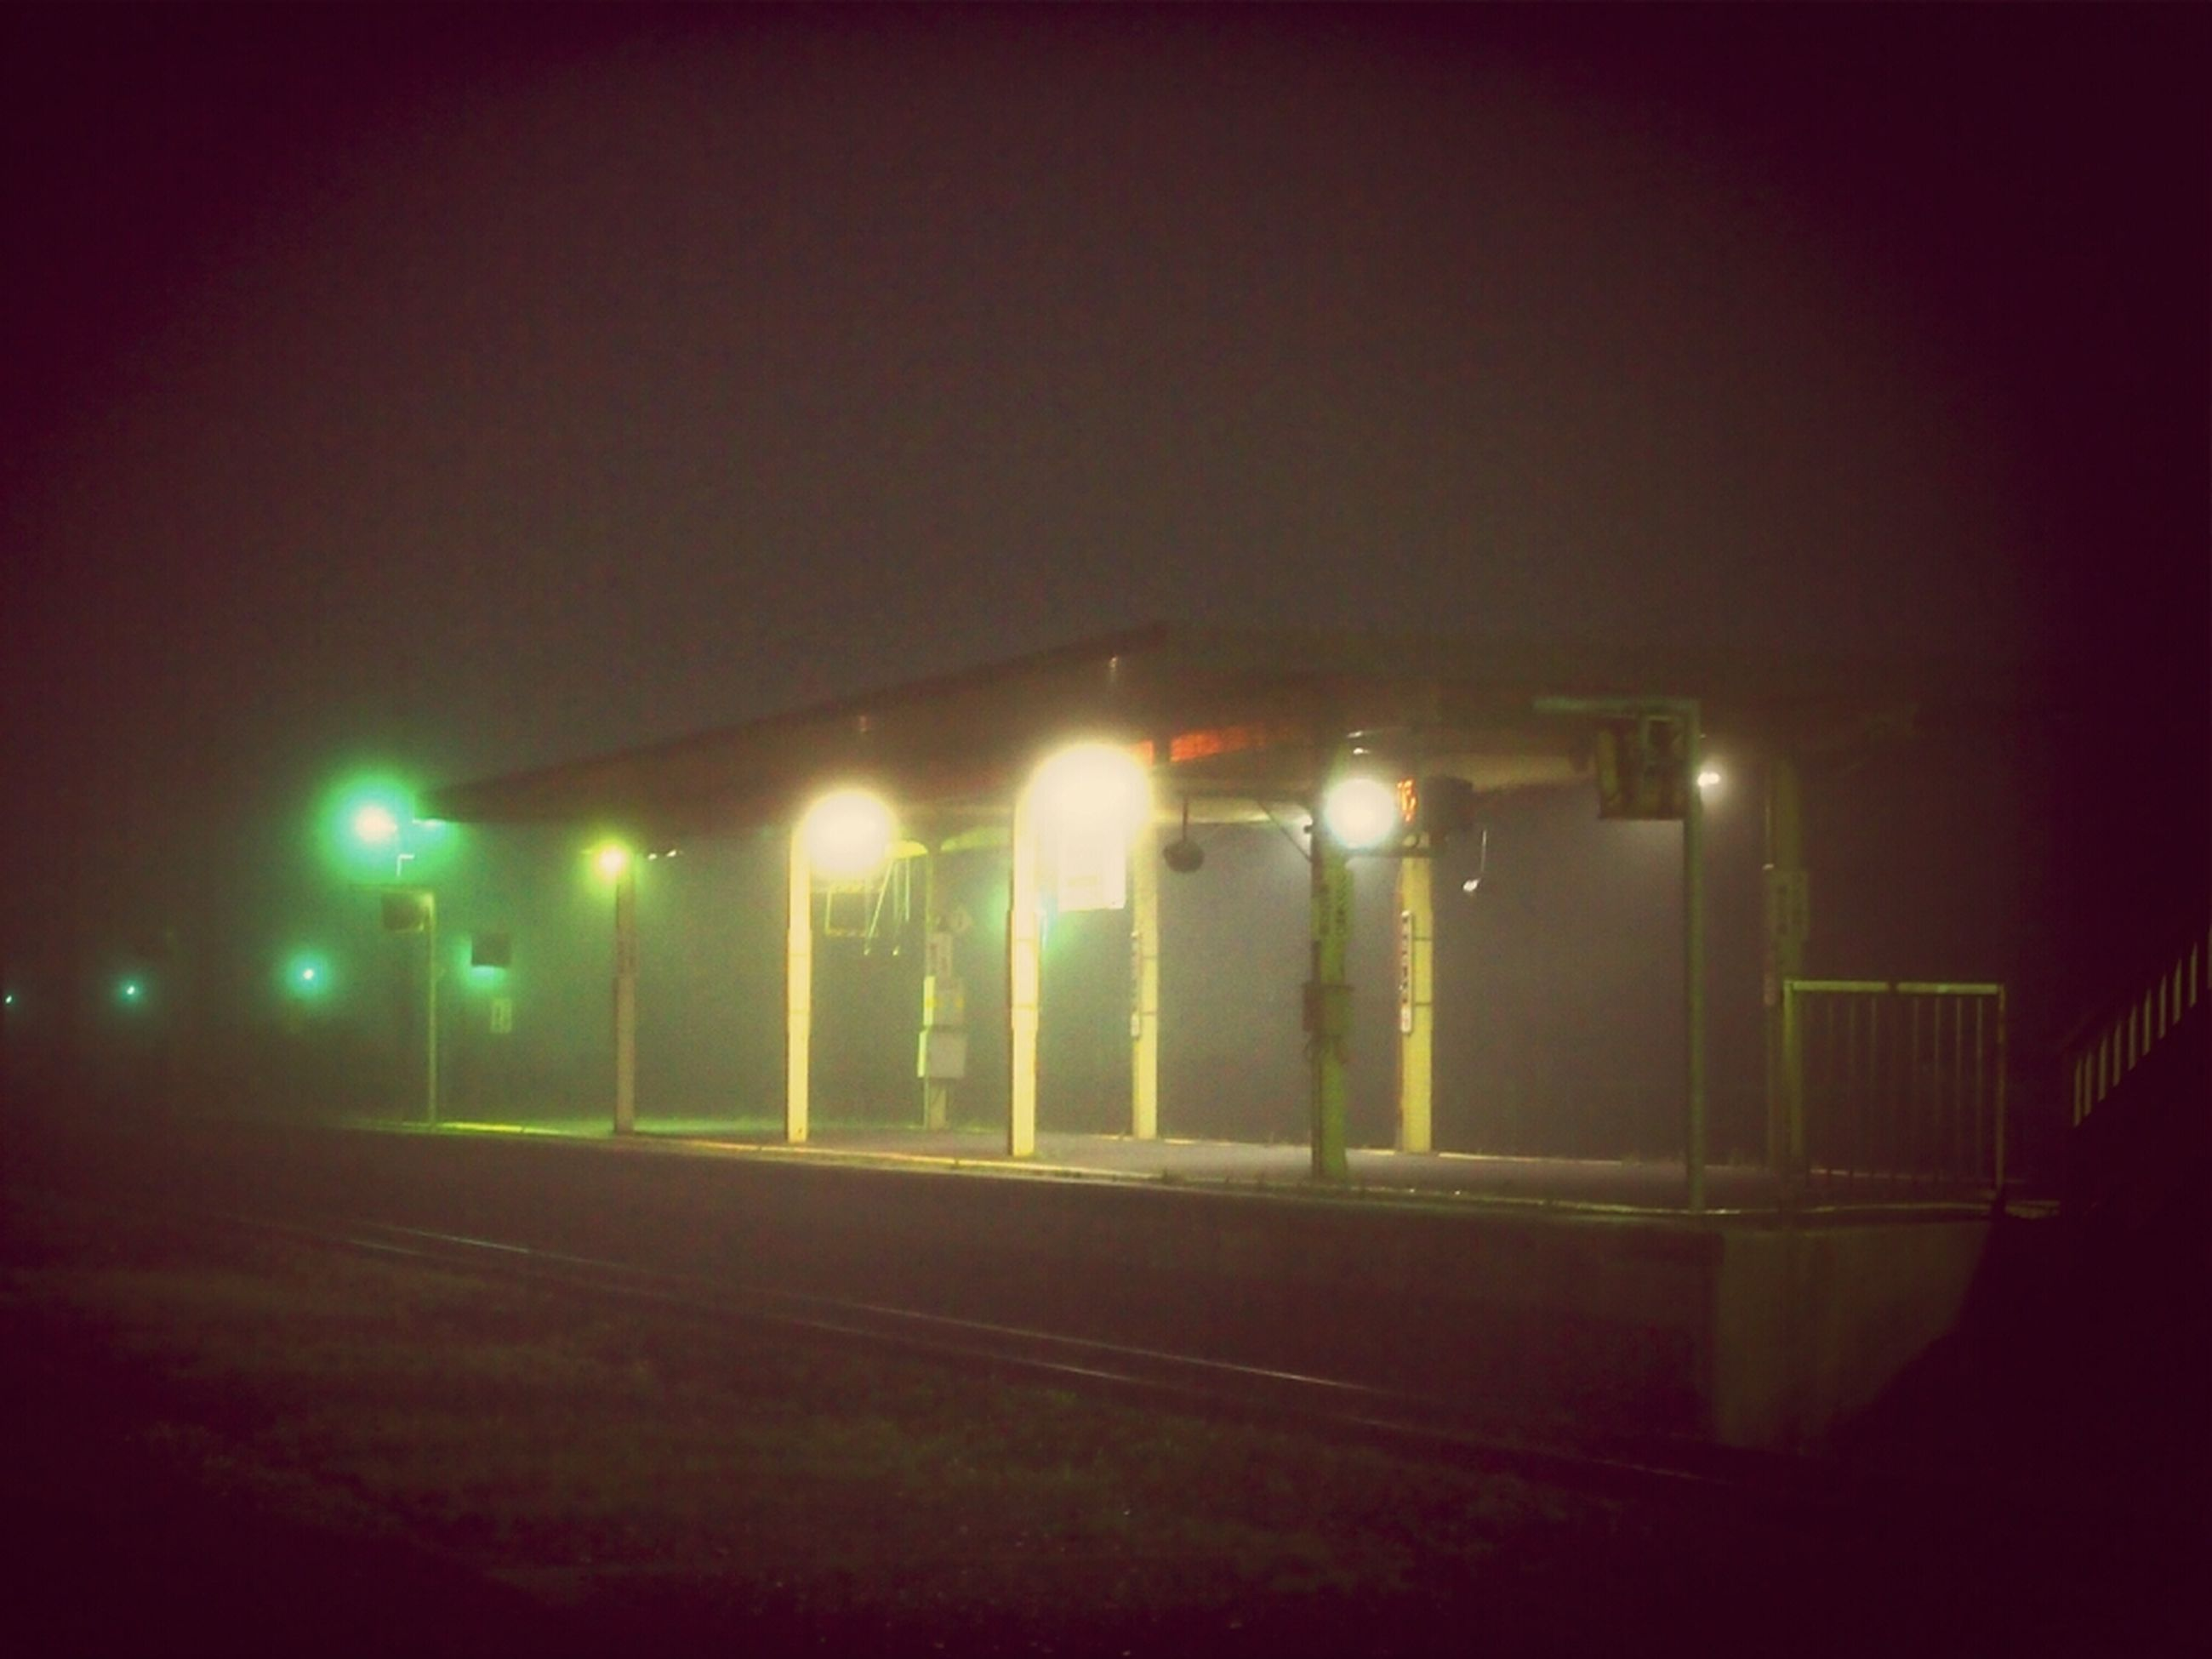 illuminated, night, lighting equipment, street light, light - natural phenomenon, copy space, built structure, architecture, dark, building exterior, glowing, no people, outdoors, electric light, street, road, long exposure, green color, clear sky, light